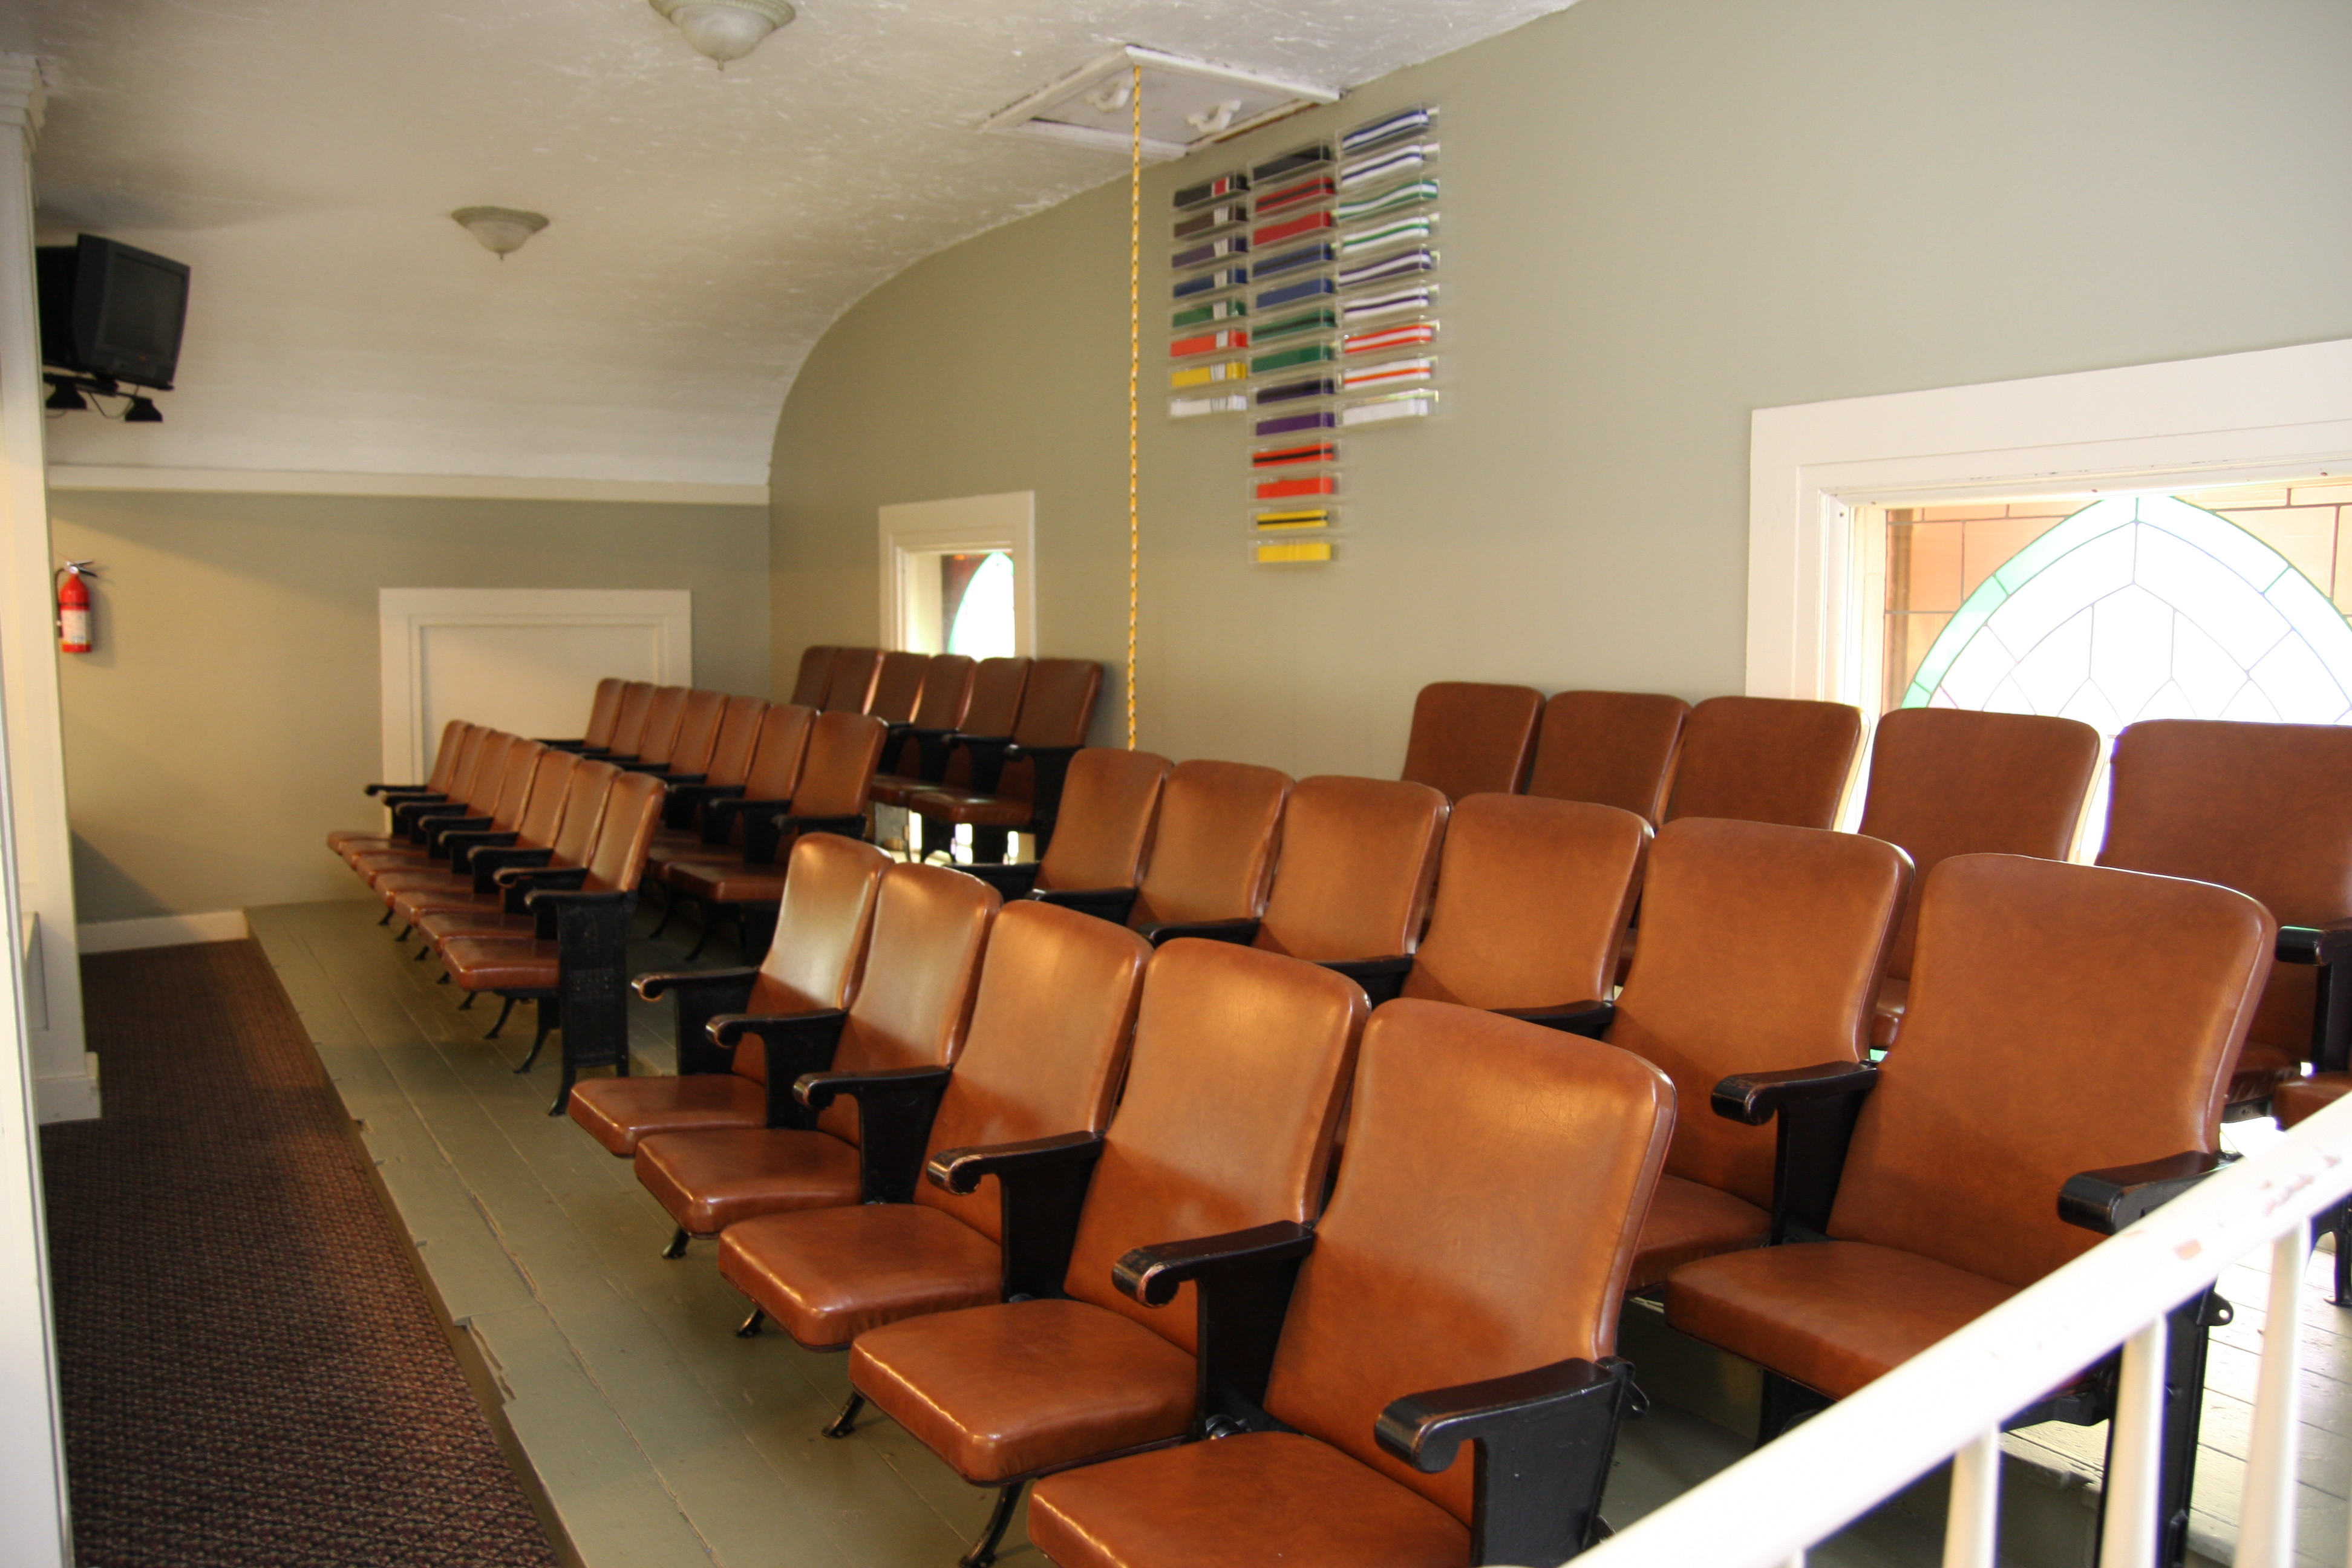 The balcony / parent viewing area